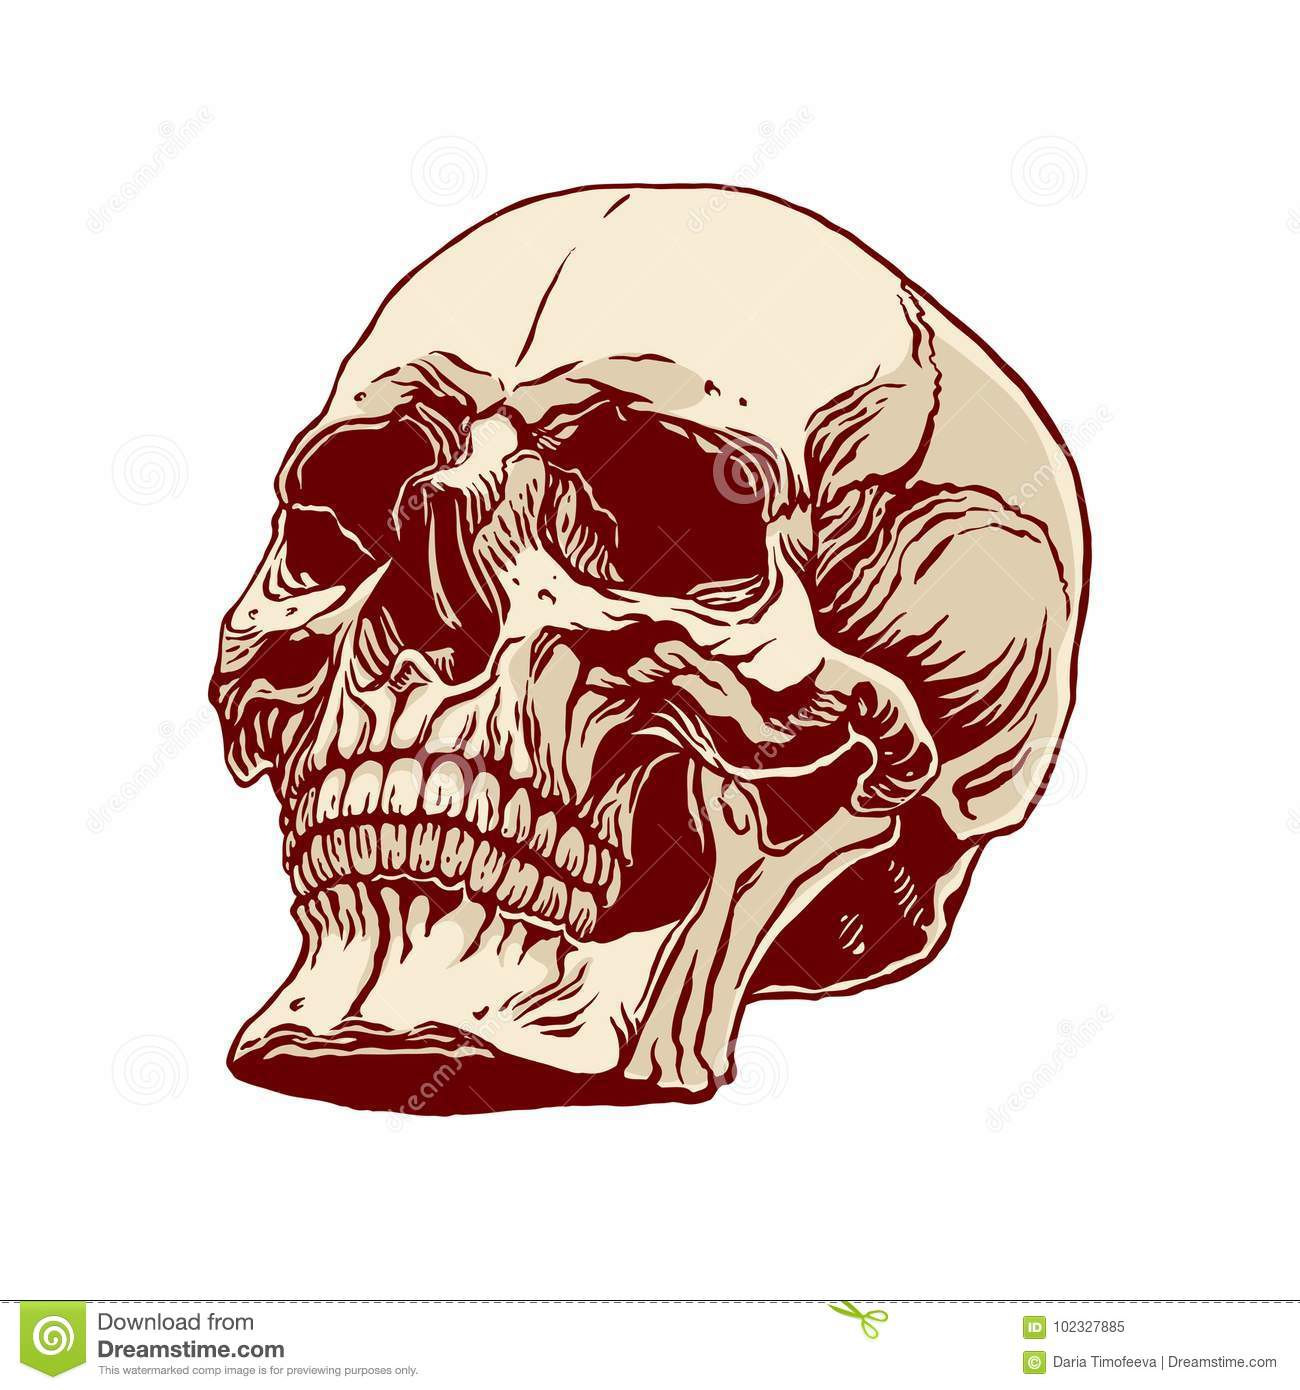 Hand Drawn Human Skull Stock Vector Illustration Of Brown 102327885